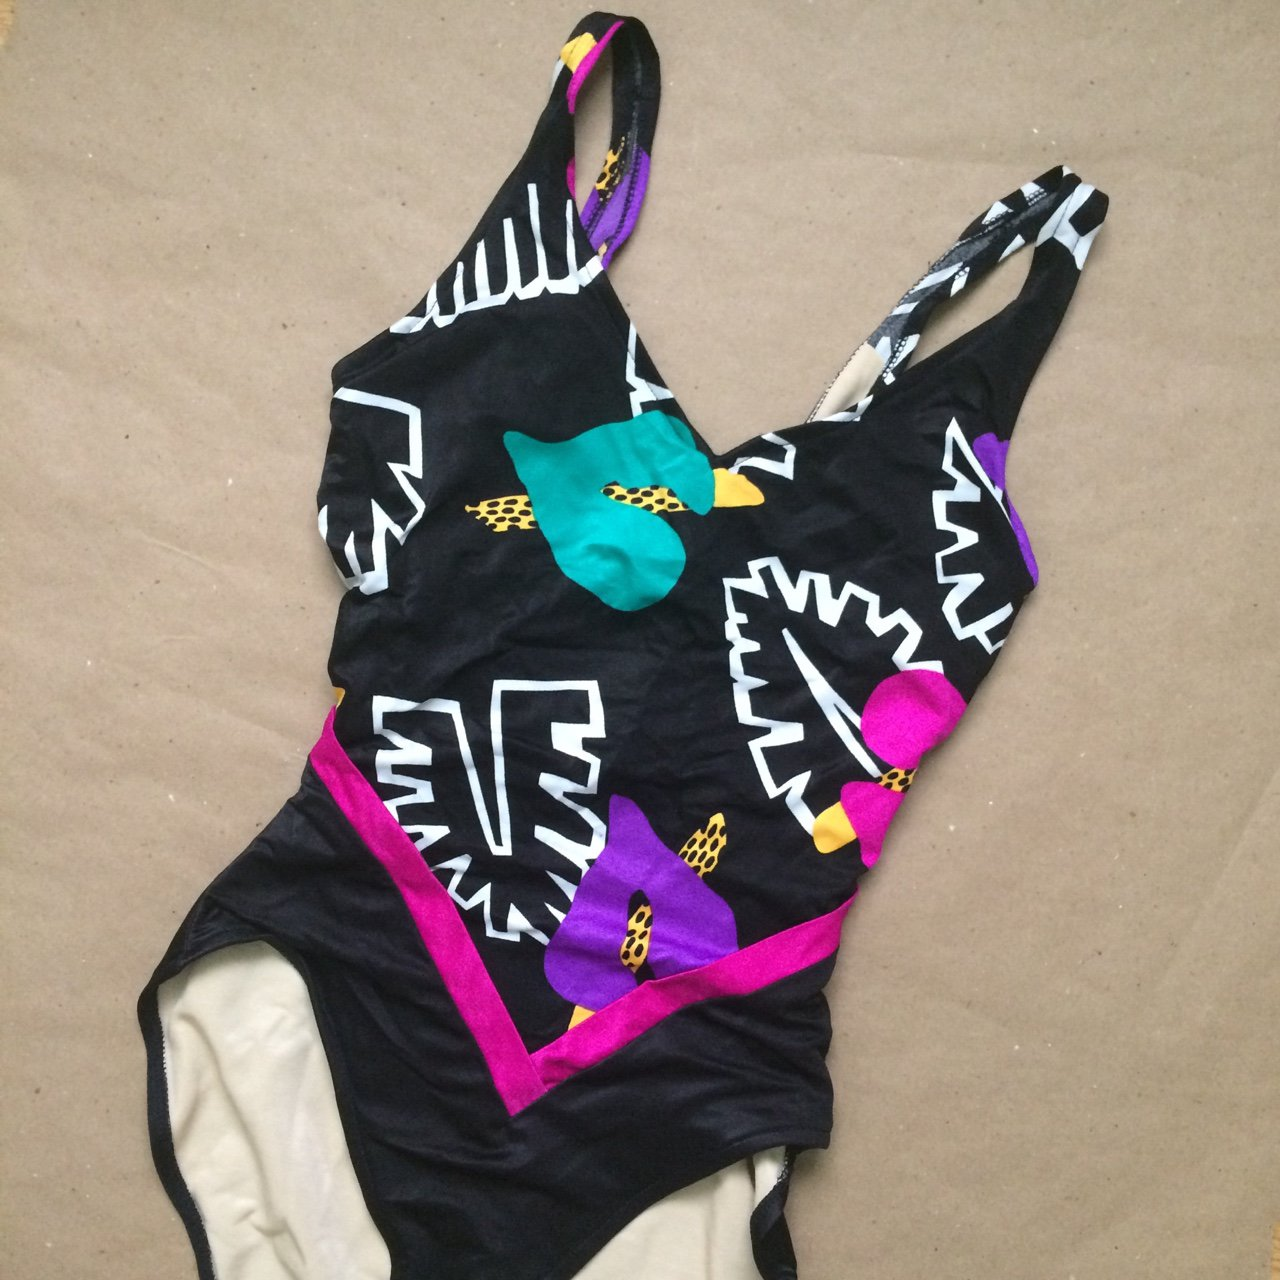 af4f7d9dac5 @themerryvintage. 2 years ago. California, USA. Amazing vintage 80s  colorful patterned one piece swimsuit ...